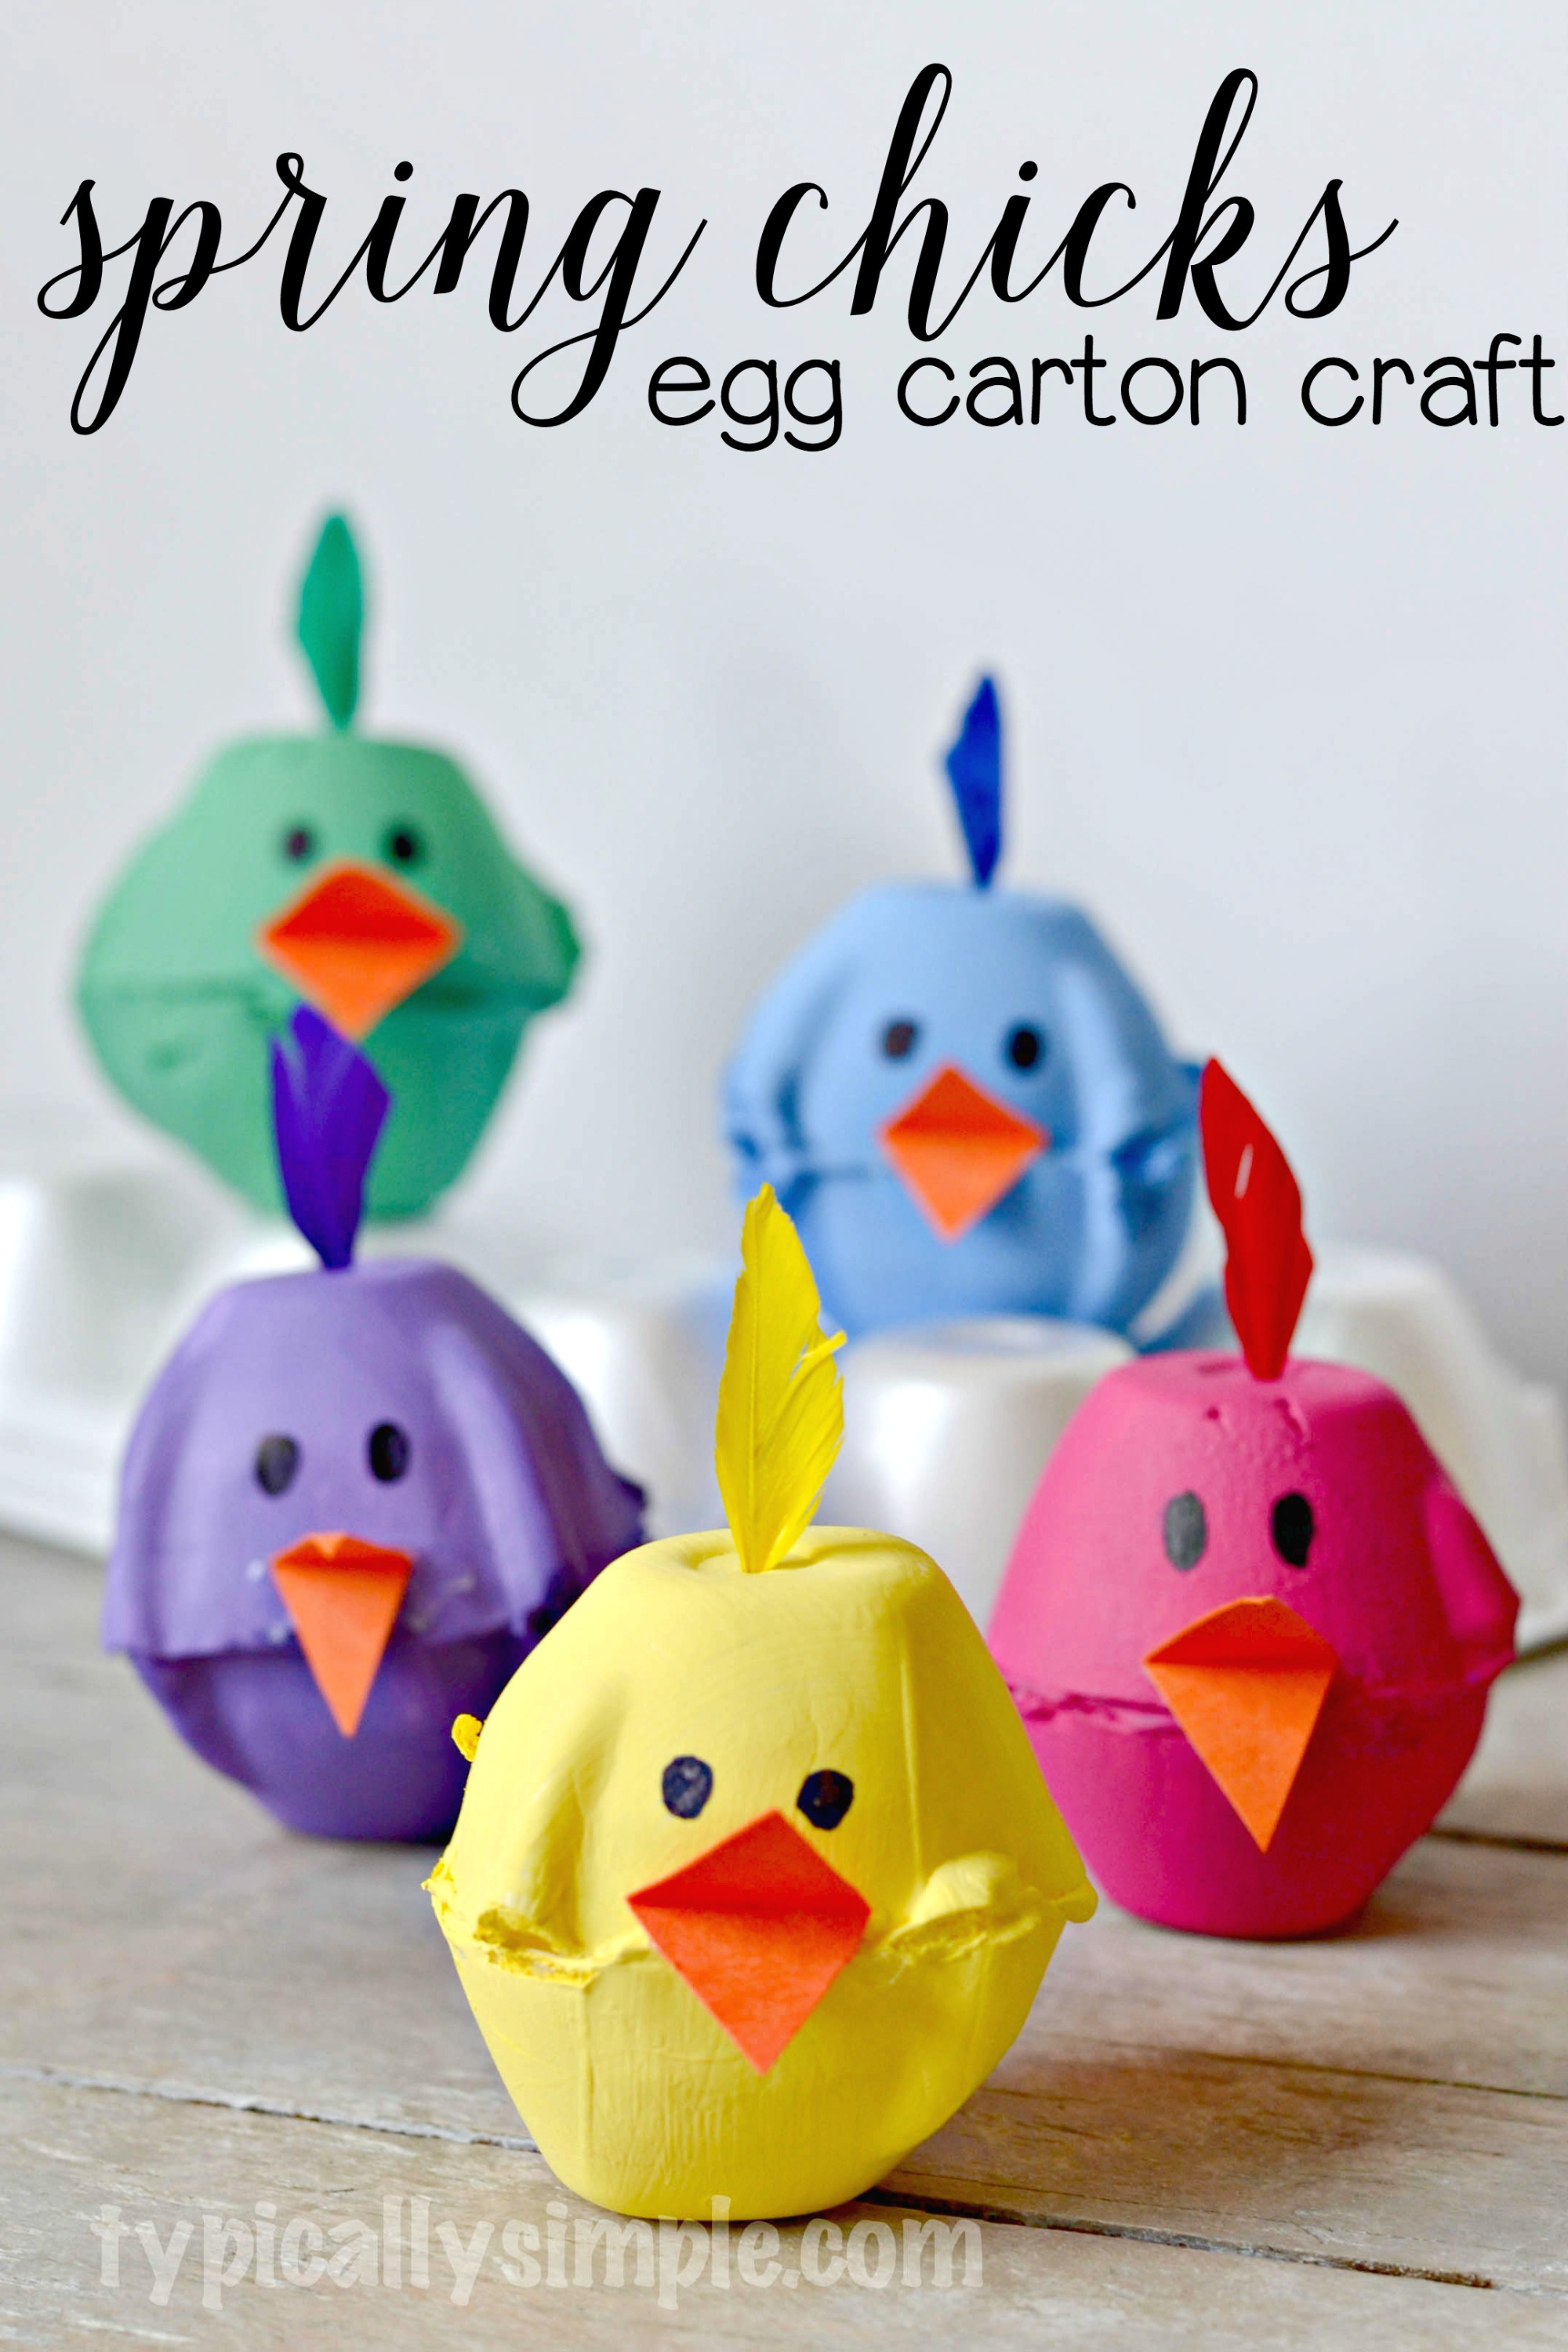 8 Easy Easter Crafts For Kids Diy Thought